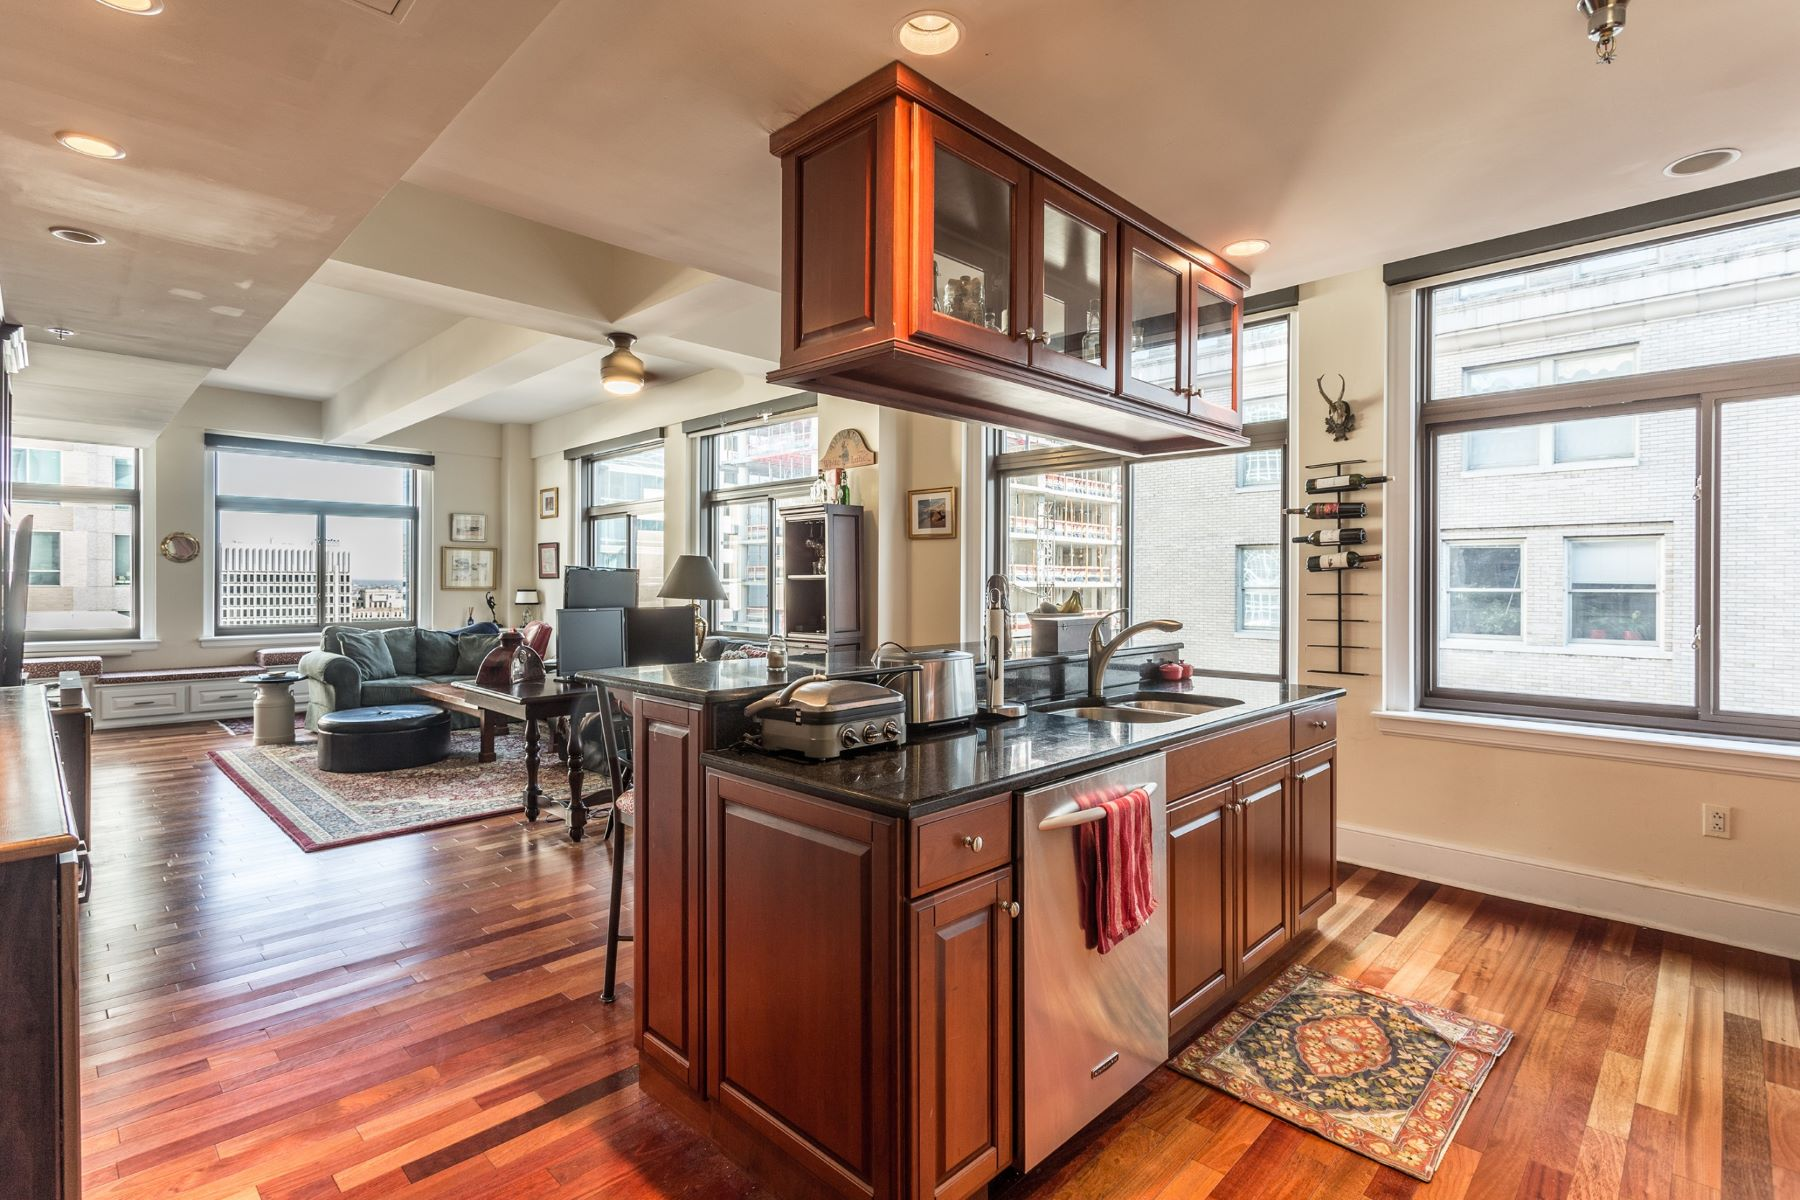 for Sale at 1500 Chestnut St #20g 1500 CHESTNUT ST #20G 20G, Philadelphia, Pennsylvania, 19102 United States